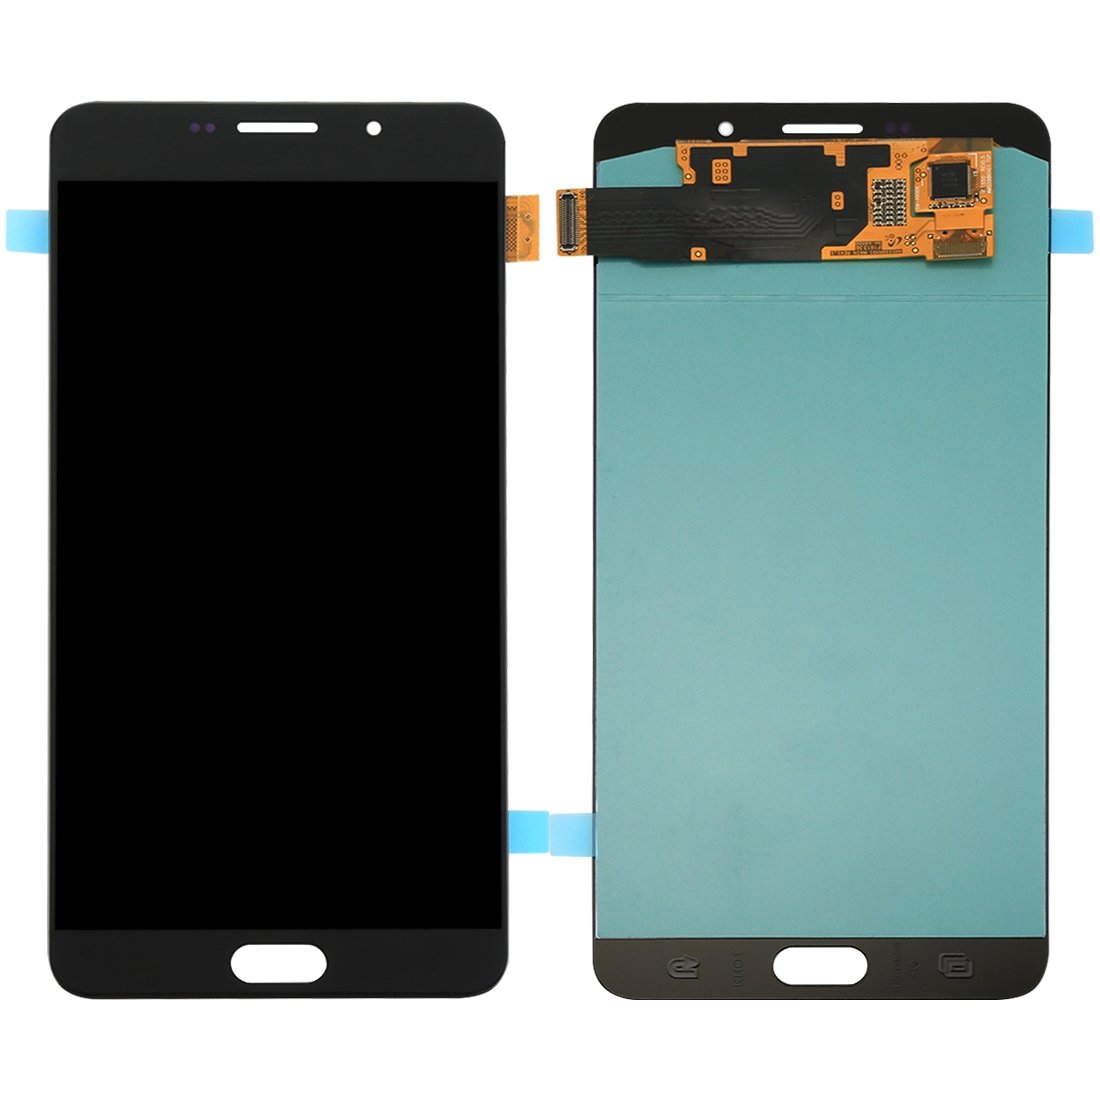 WANGYING Wangying New LCD Display + Touch Panel for Galaxy A9 / A900(Black) (Color : Black)